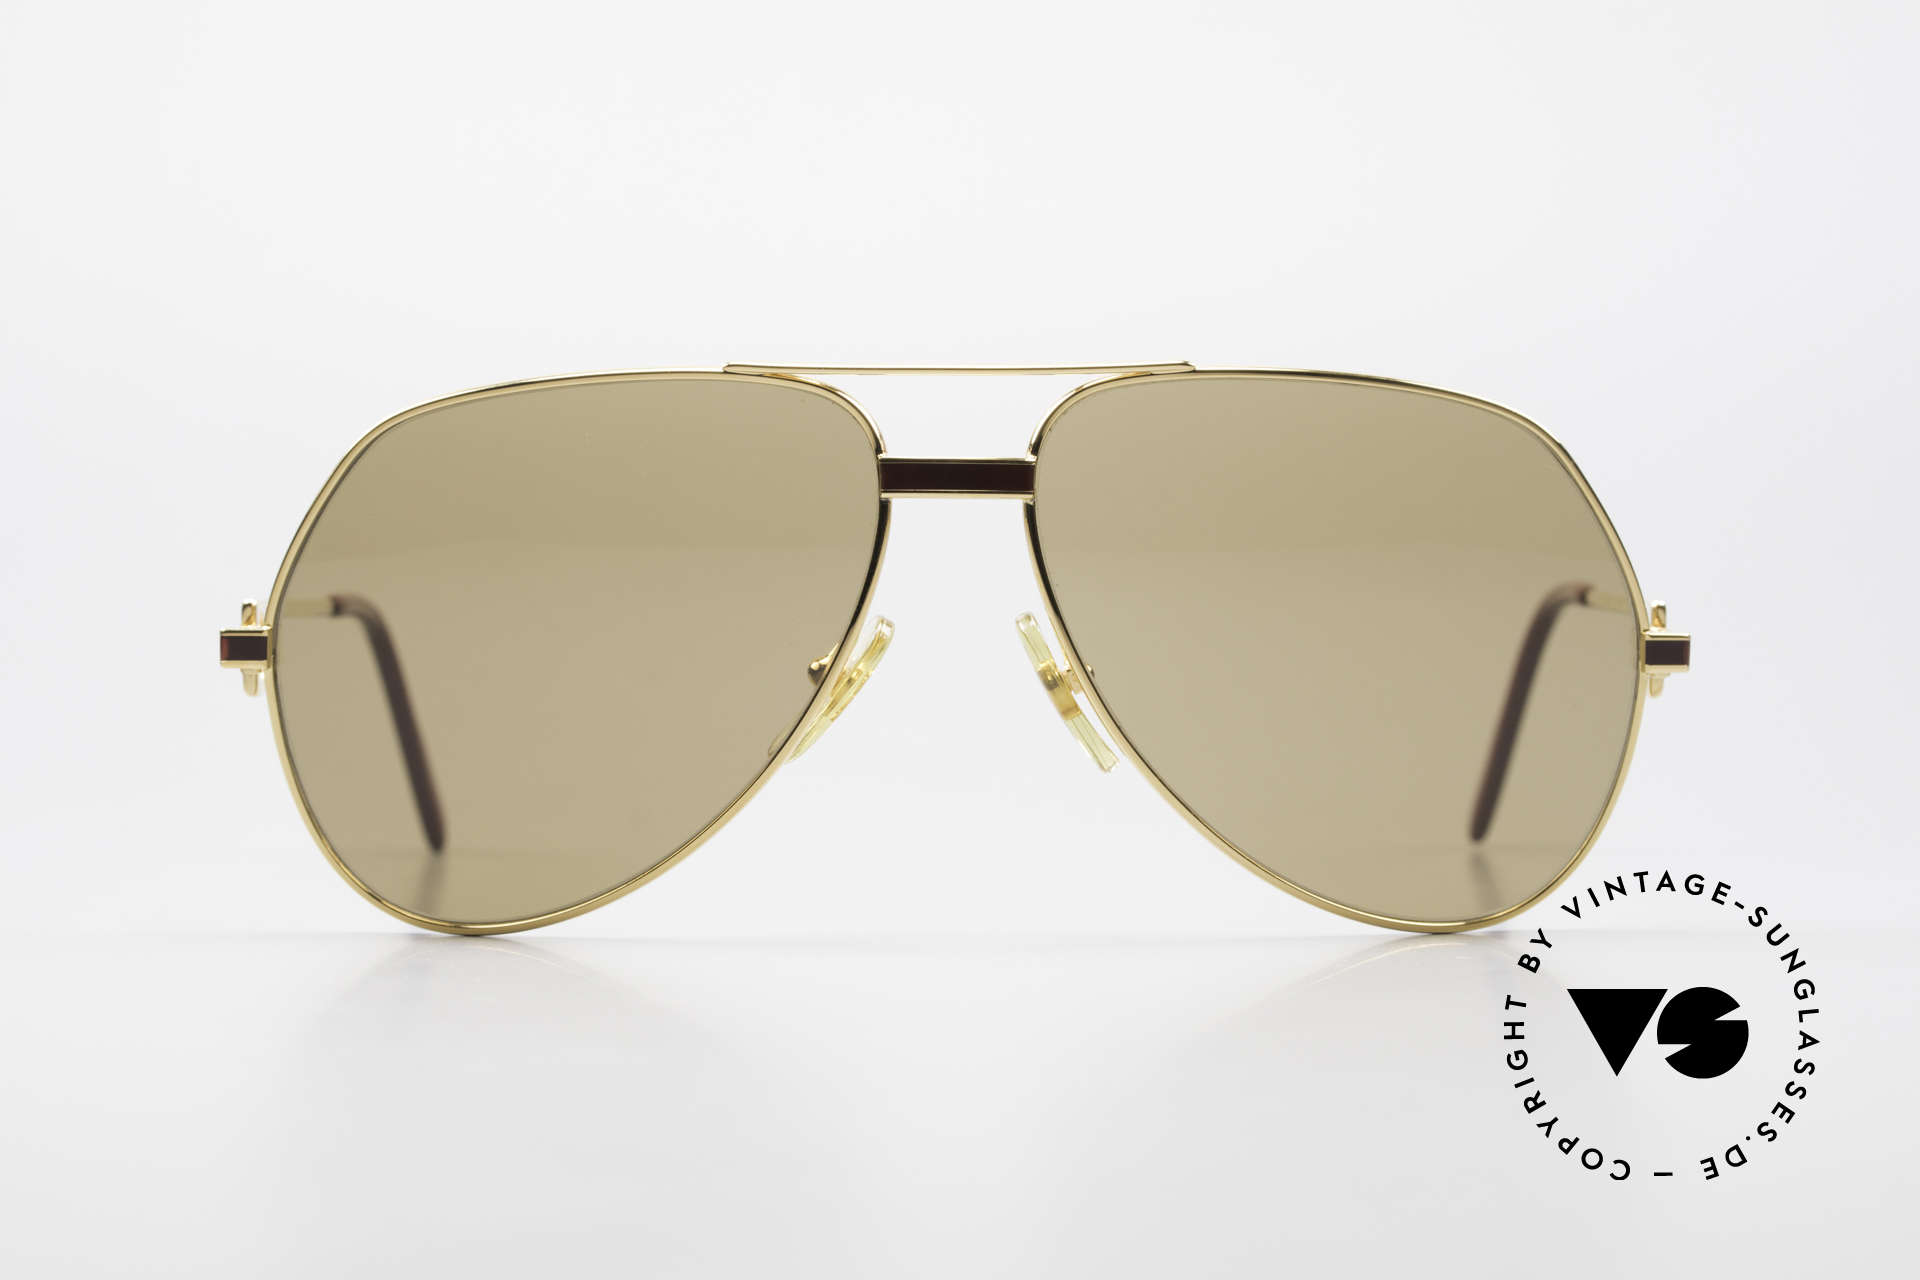 """Cartier Vendome Laque - L Mystic Cartier Mineral Lenses, mod. """"Vendome"""" was launched in 1983 & made till 1997, Made for Men"""